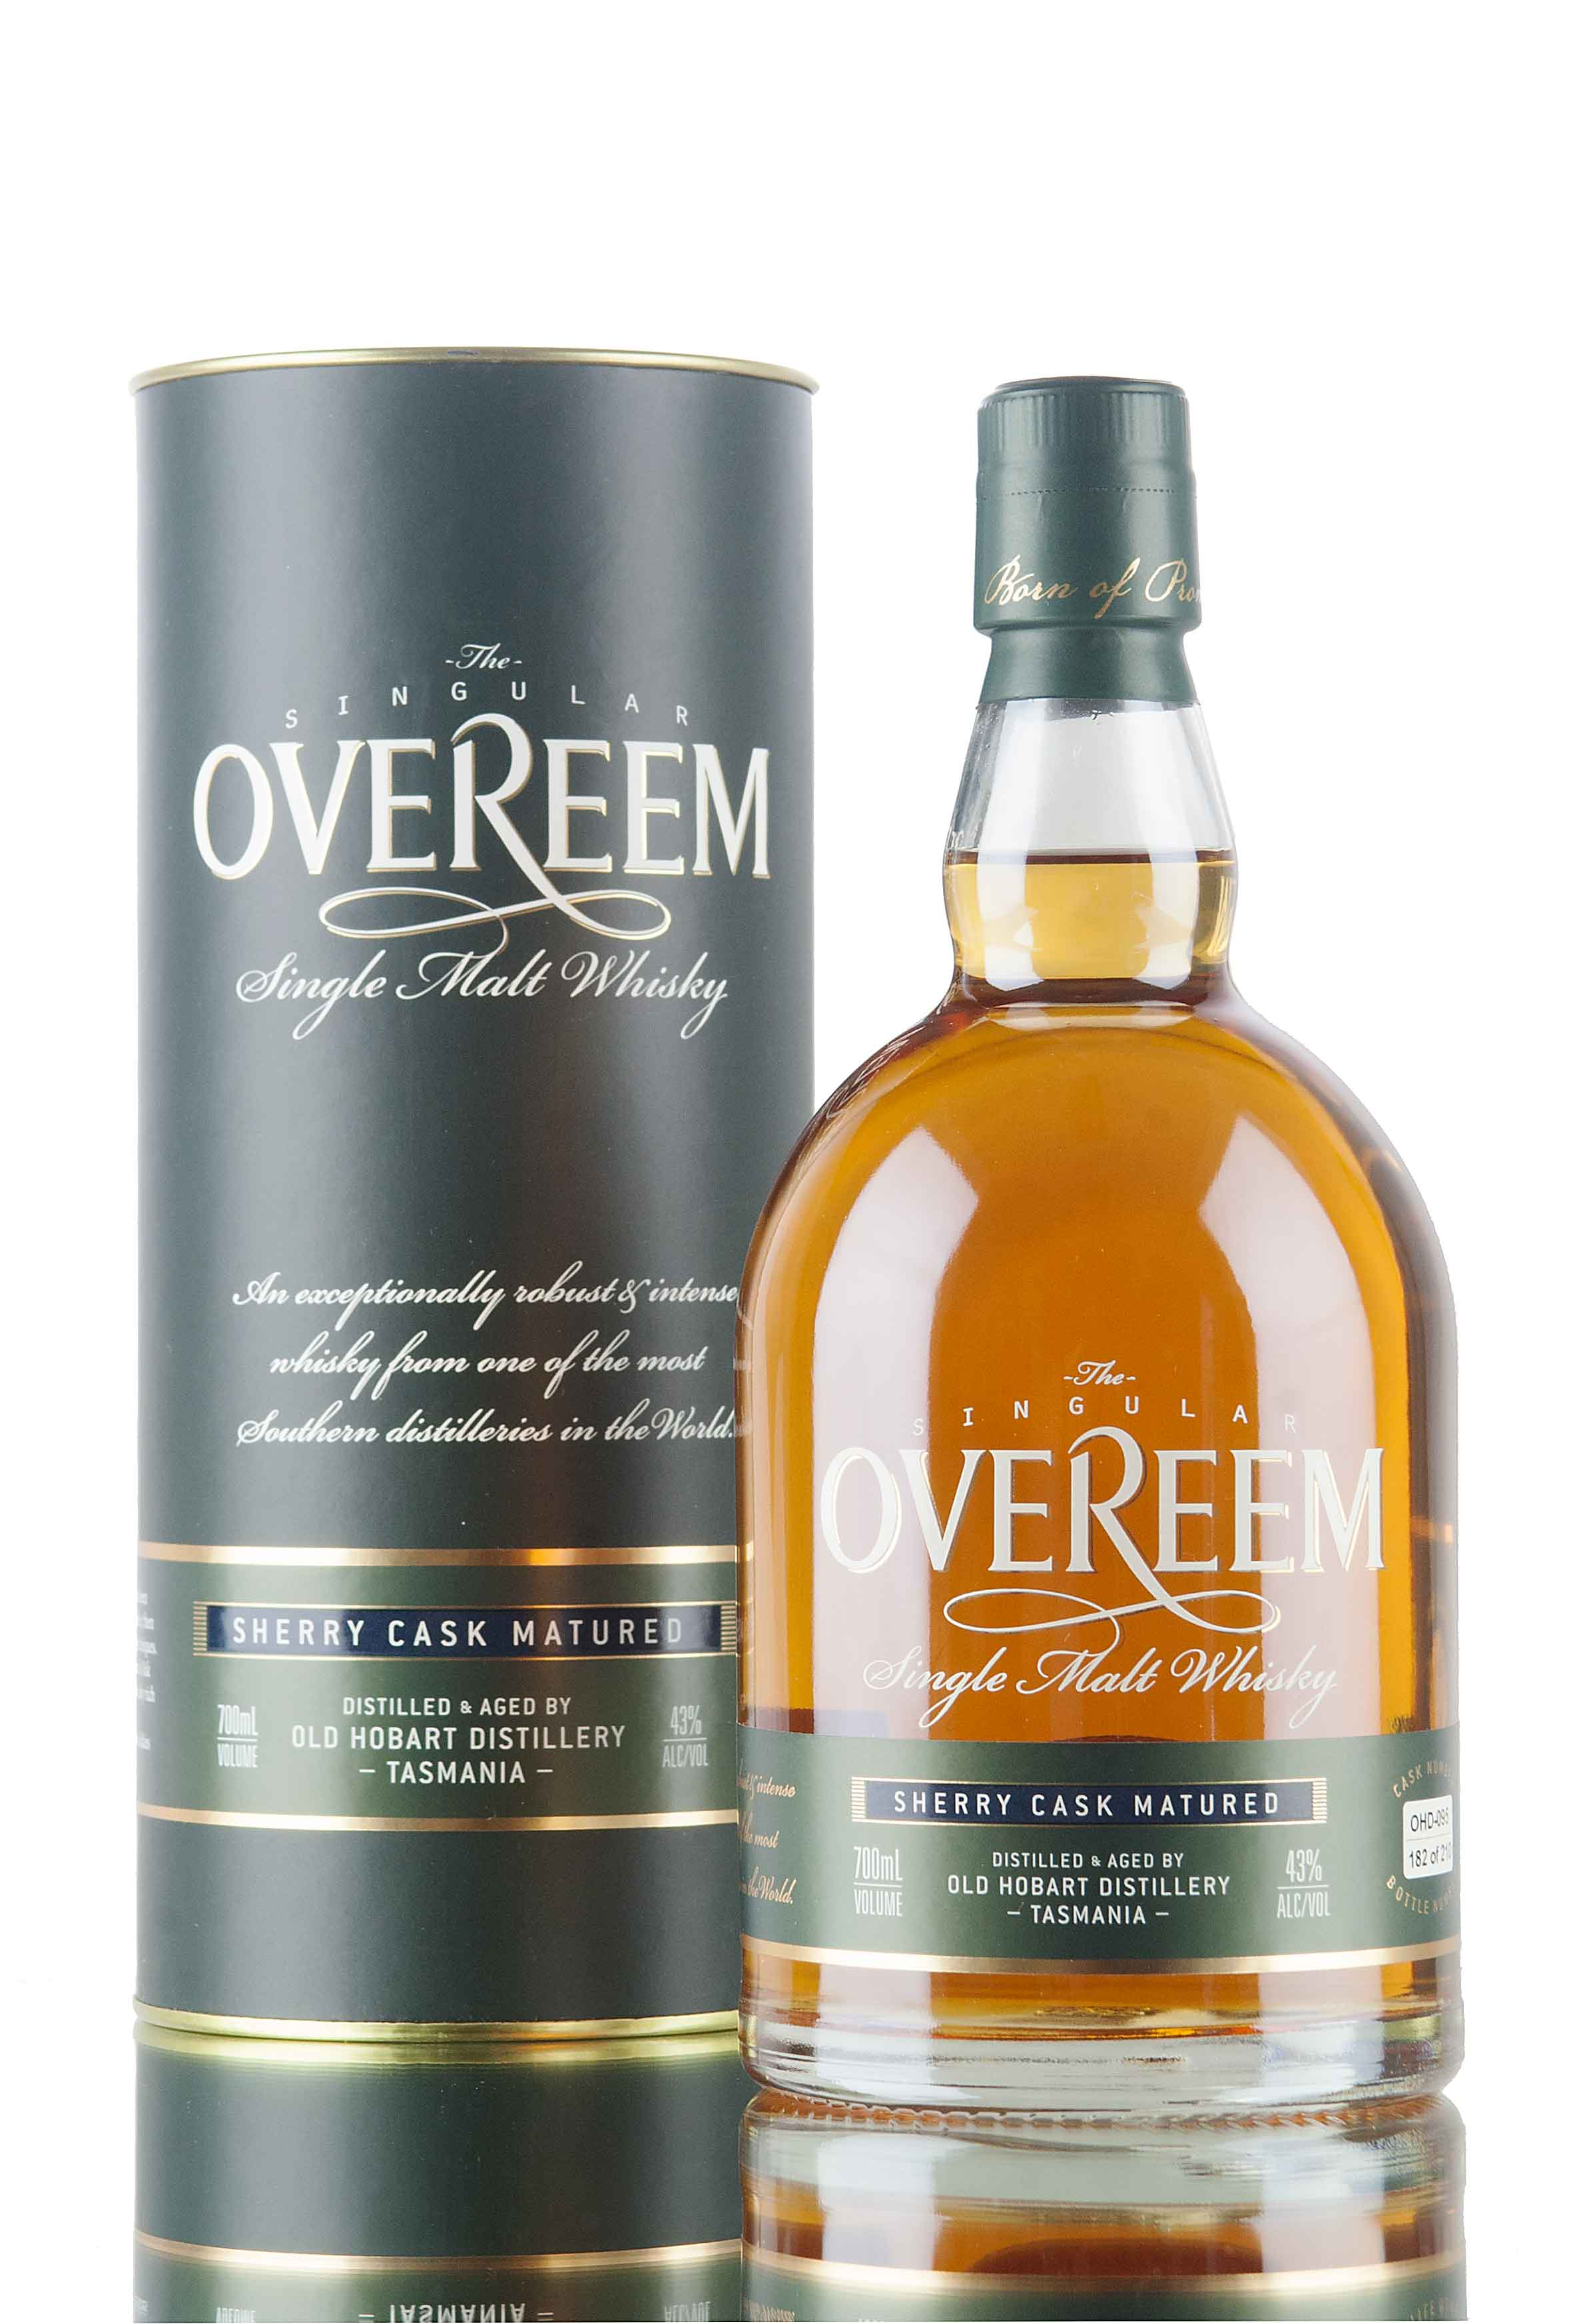 Overeem Sherry Cask Matured - Cask #095